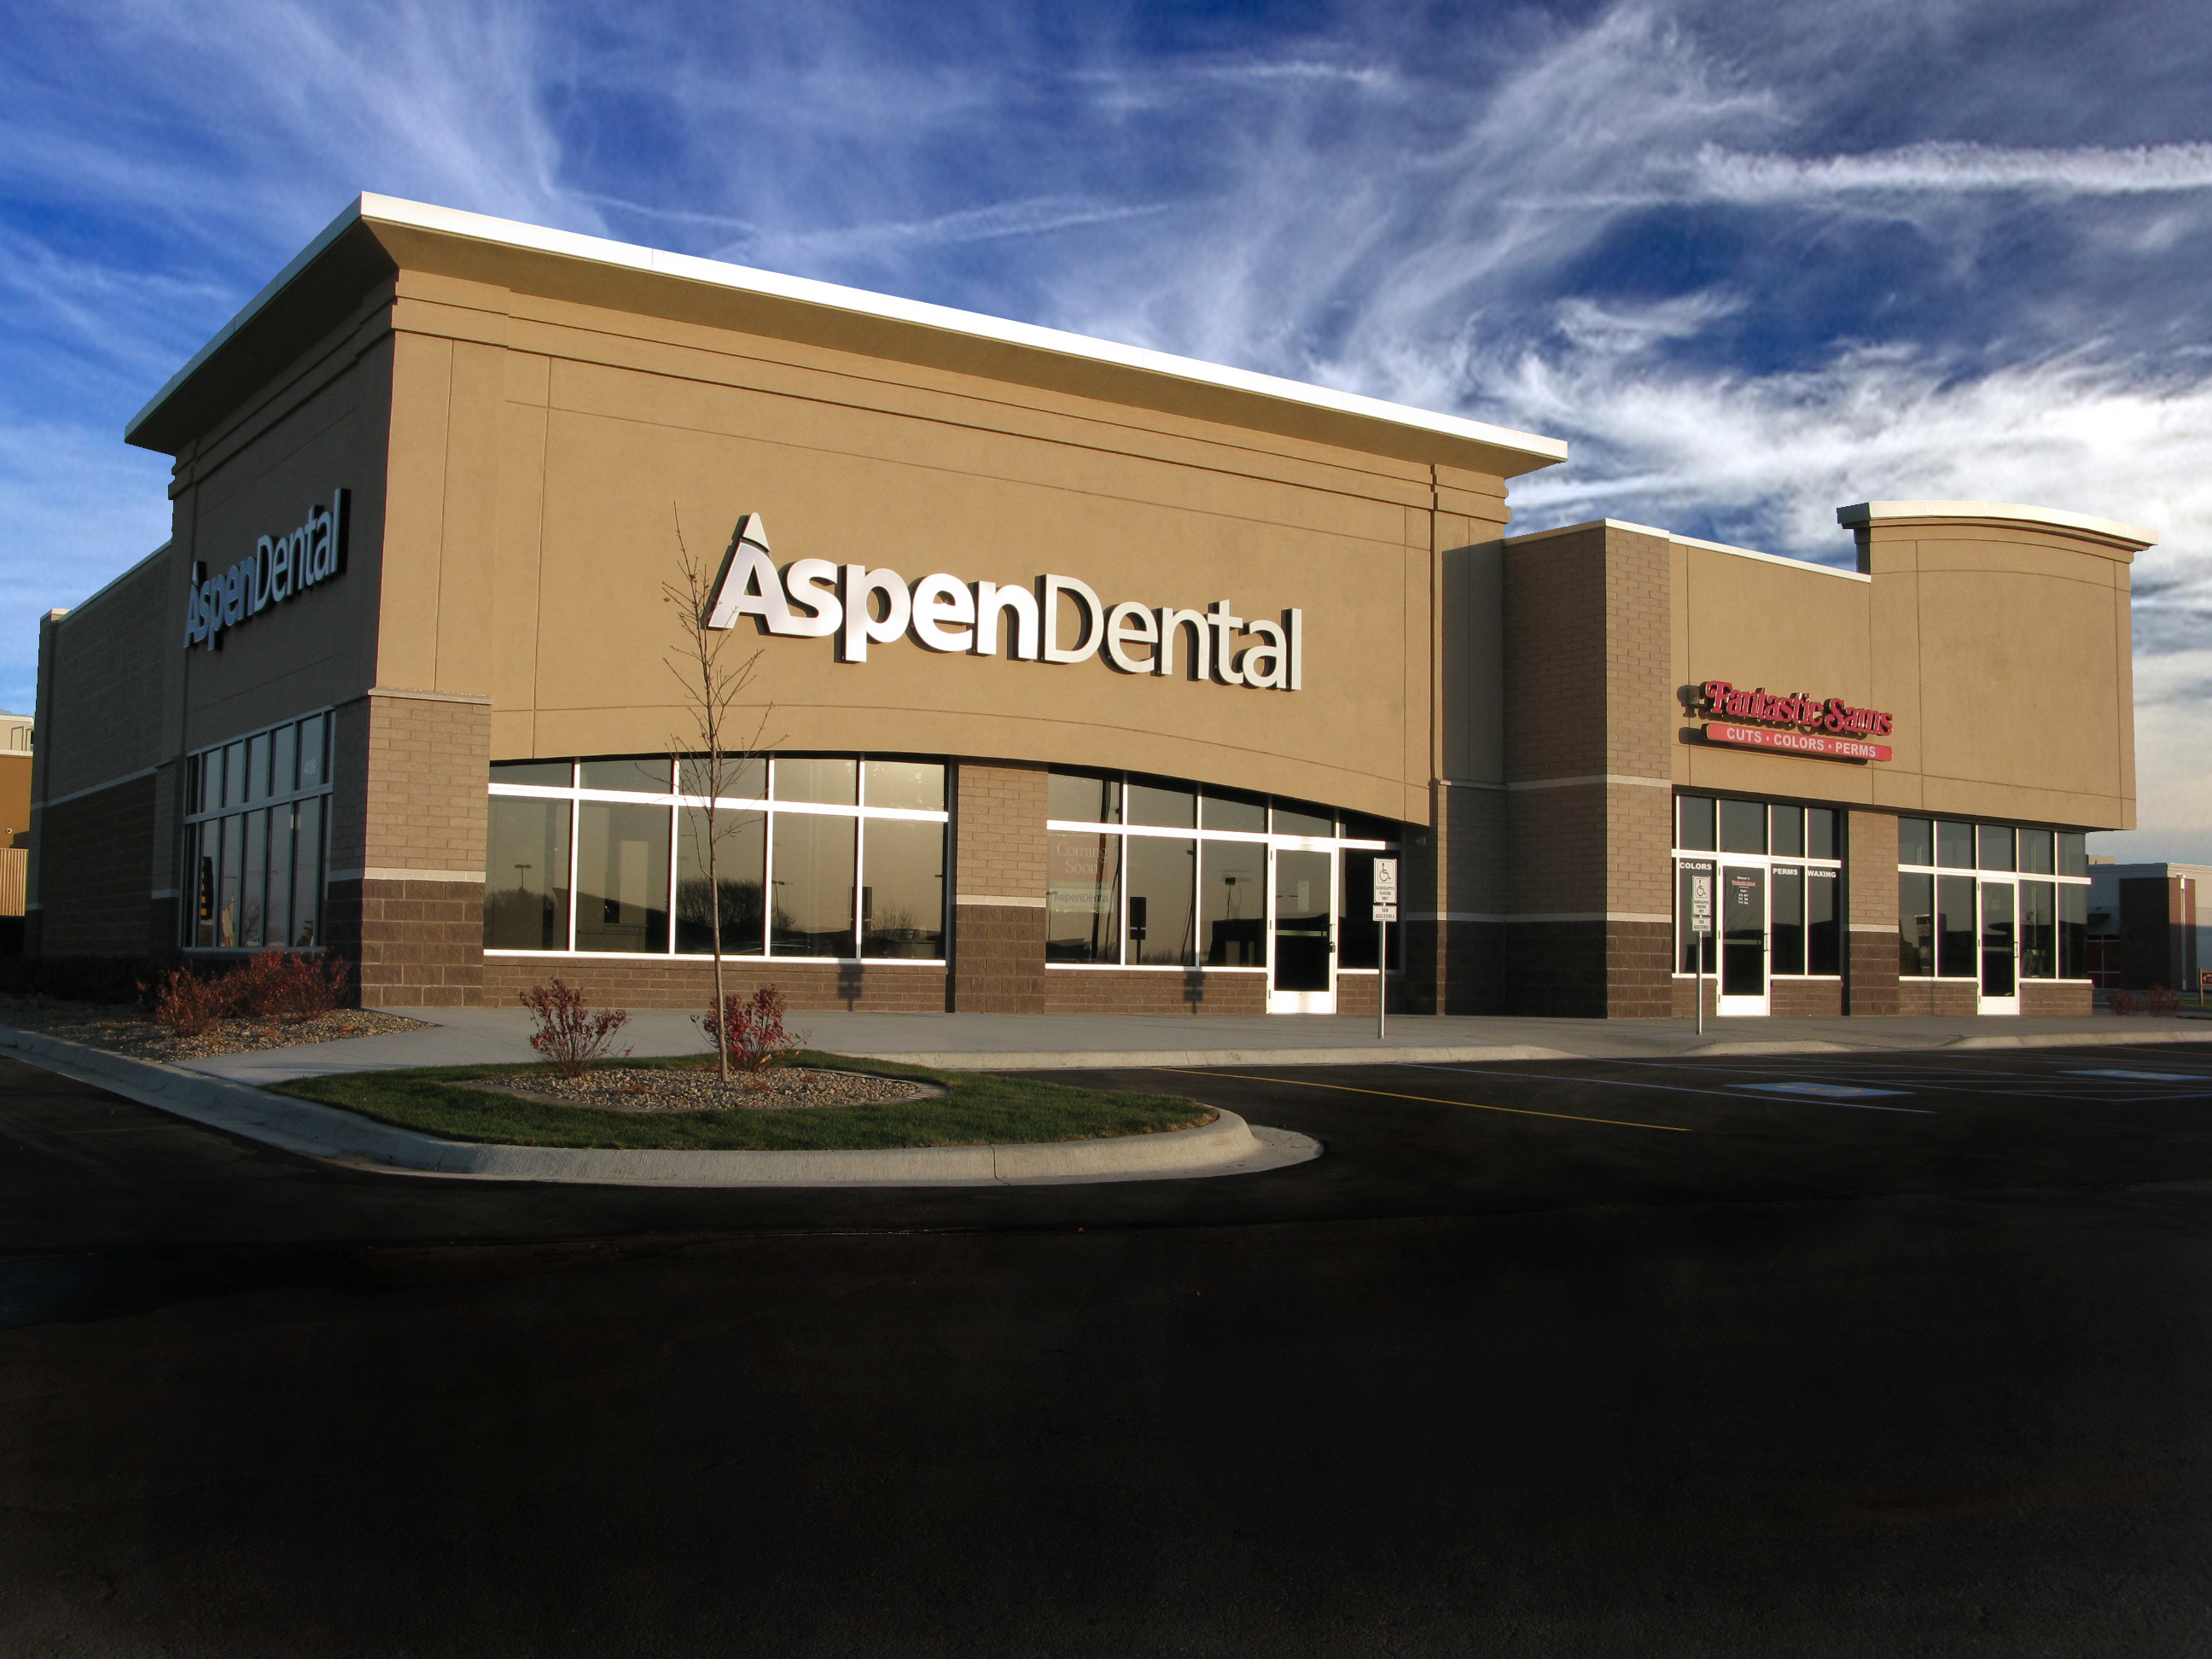 ASPEN DENTAL MULTI-TENANT BUILDING